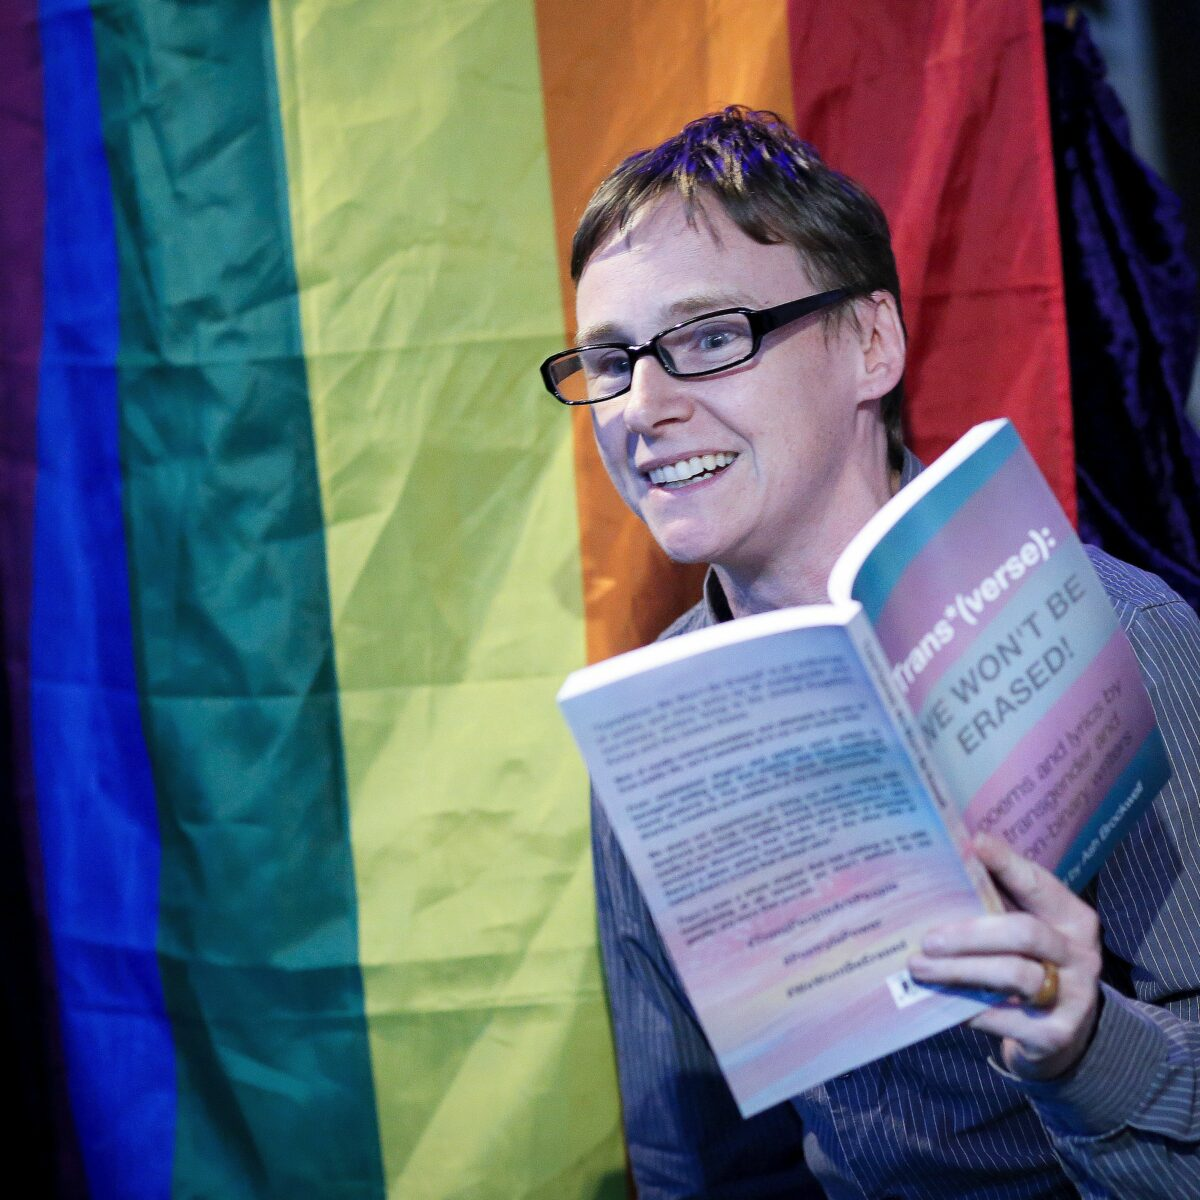 LGBTQ+ community event to run at God's House Tower, Southampton